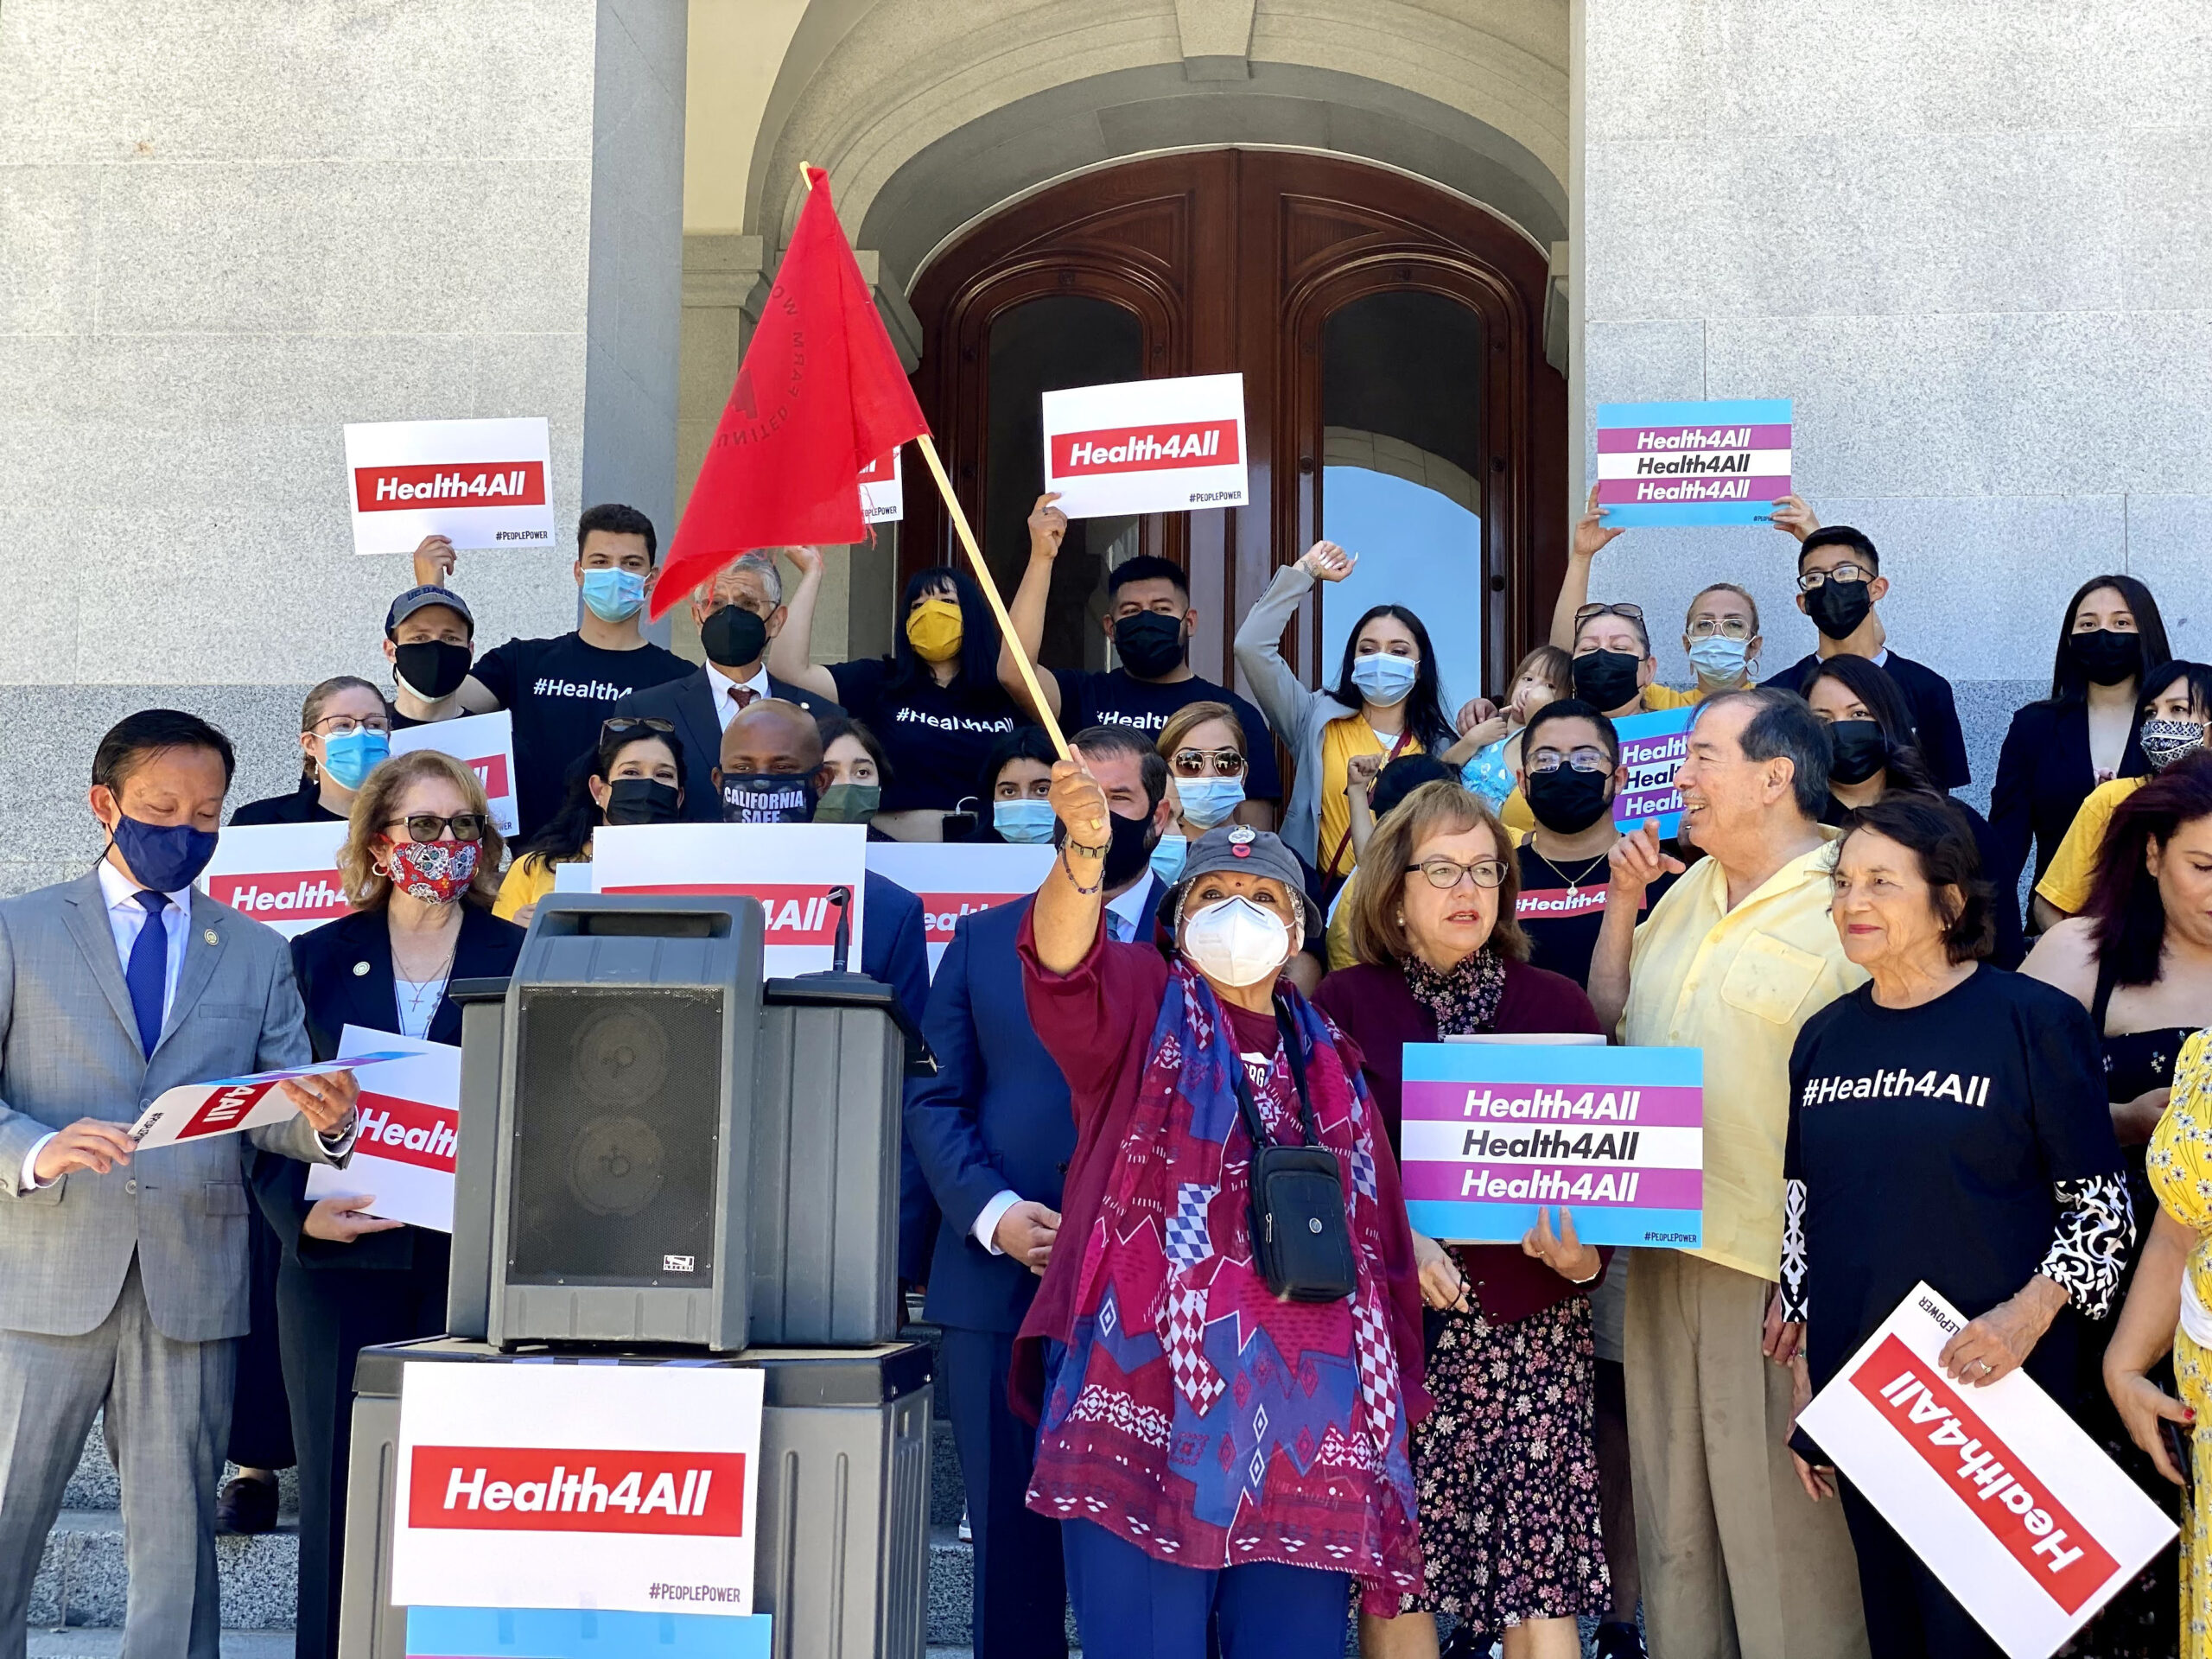 Health4All: Removing Barriers to Health Care Access for All Californians